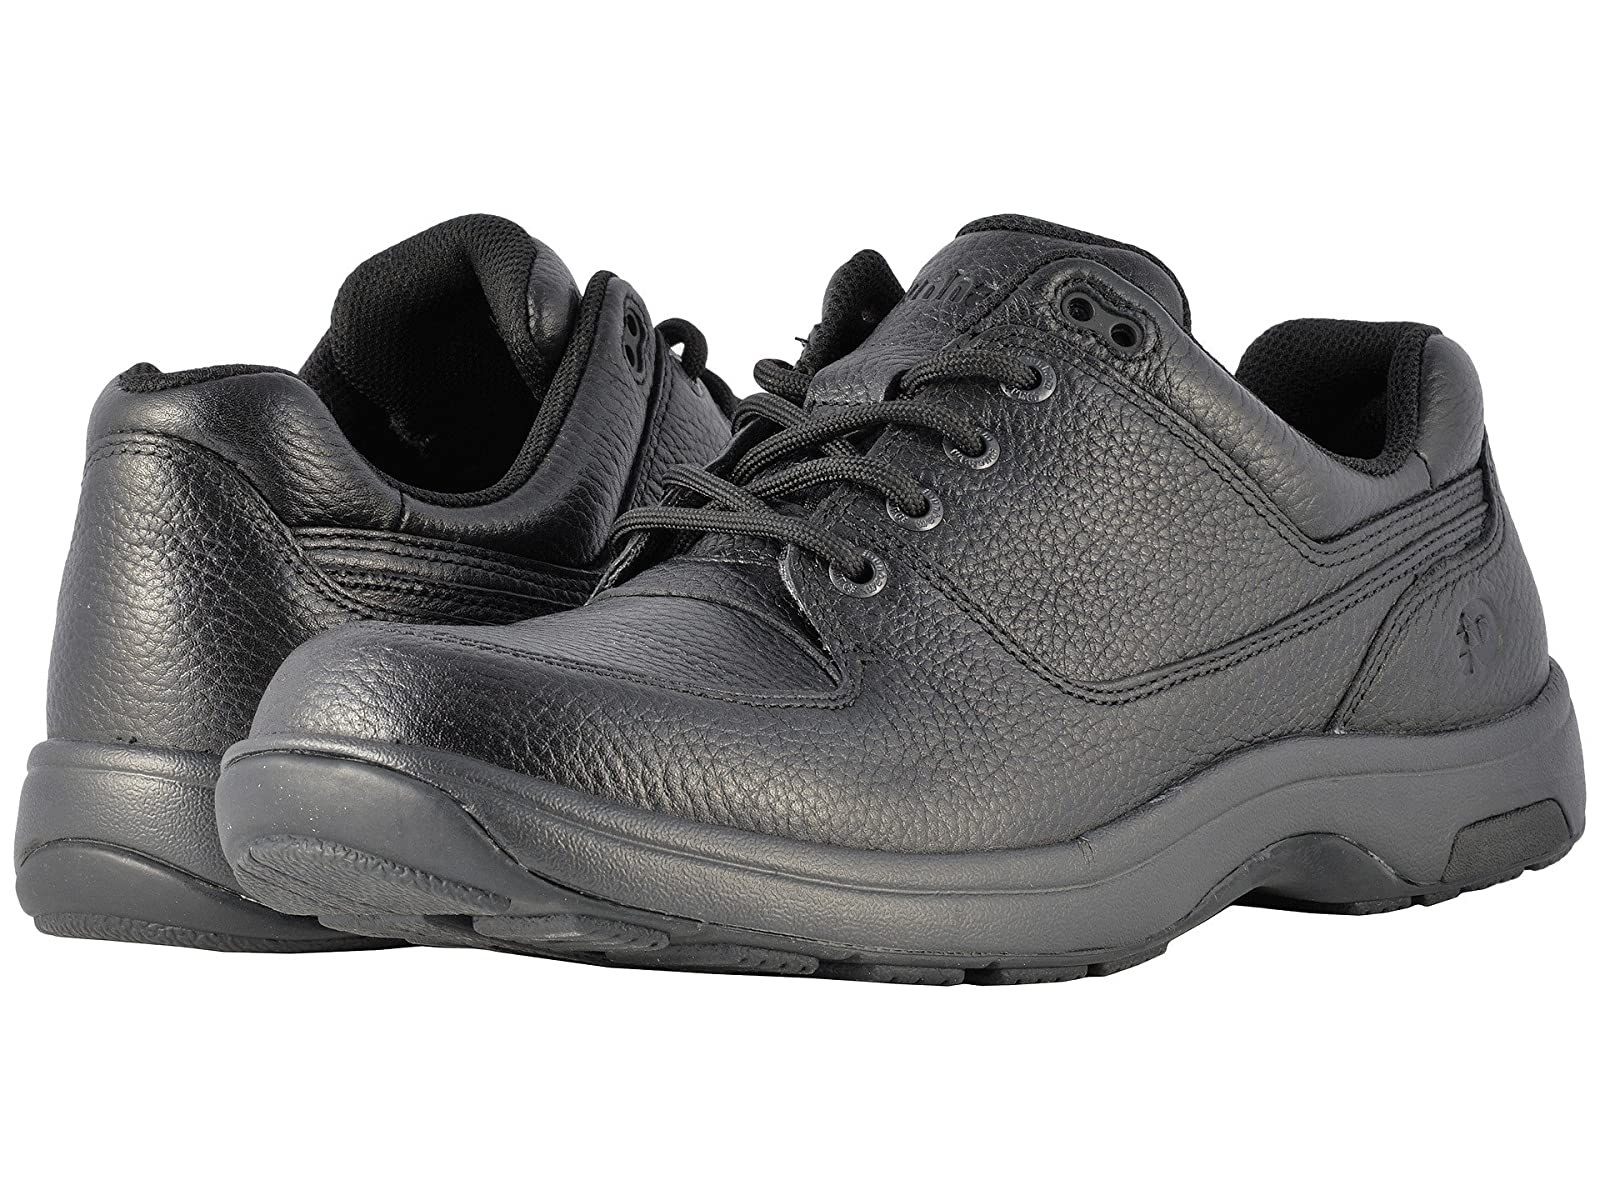 Dunham Windsor WaterproofAtmospheric grades have affordable shoes